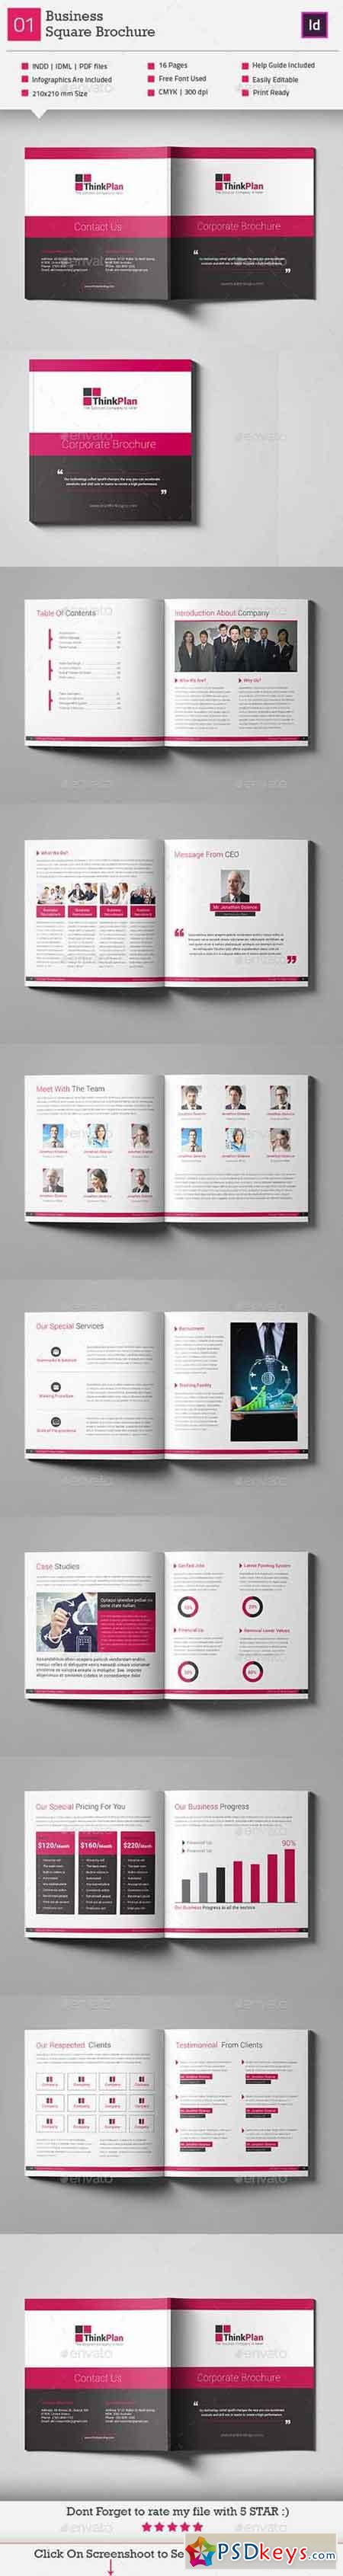 Business Square Brochure Template_V1 11229881